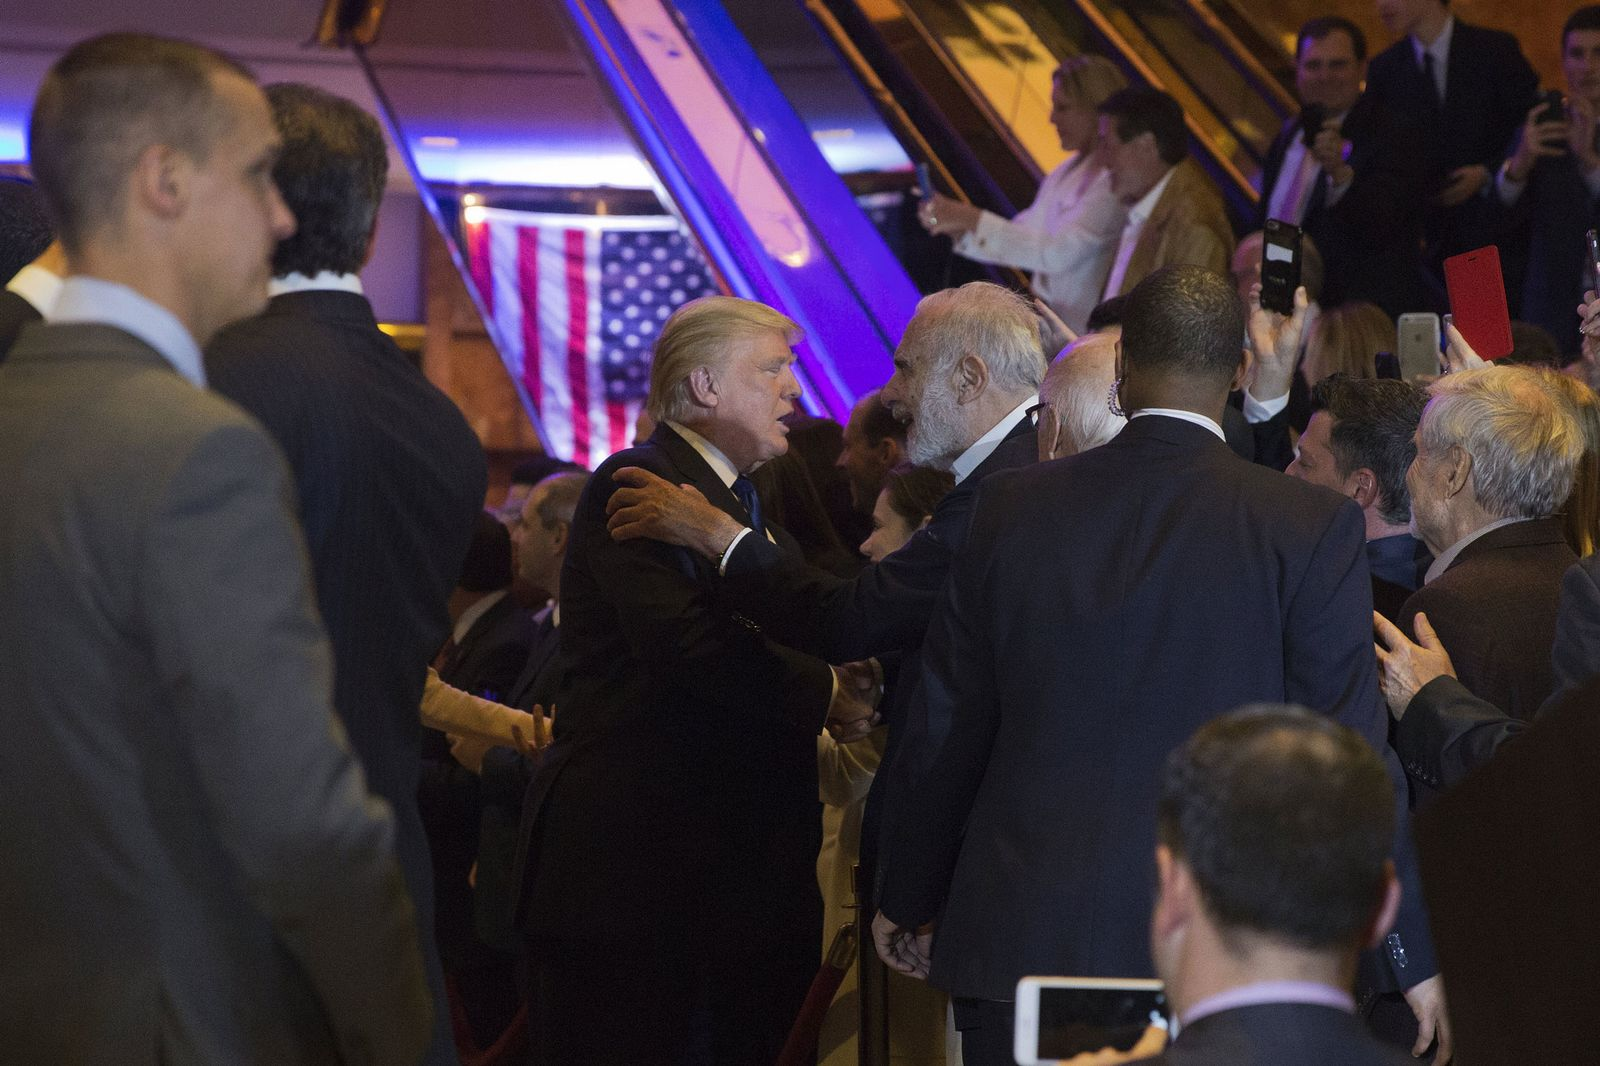 Trump and Icahn at Trump Tower the night of the New York primary in April 2016